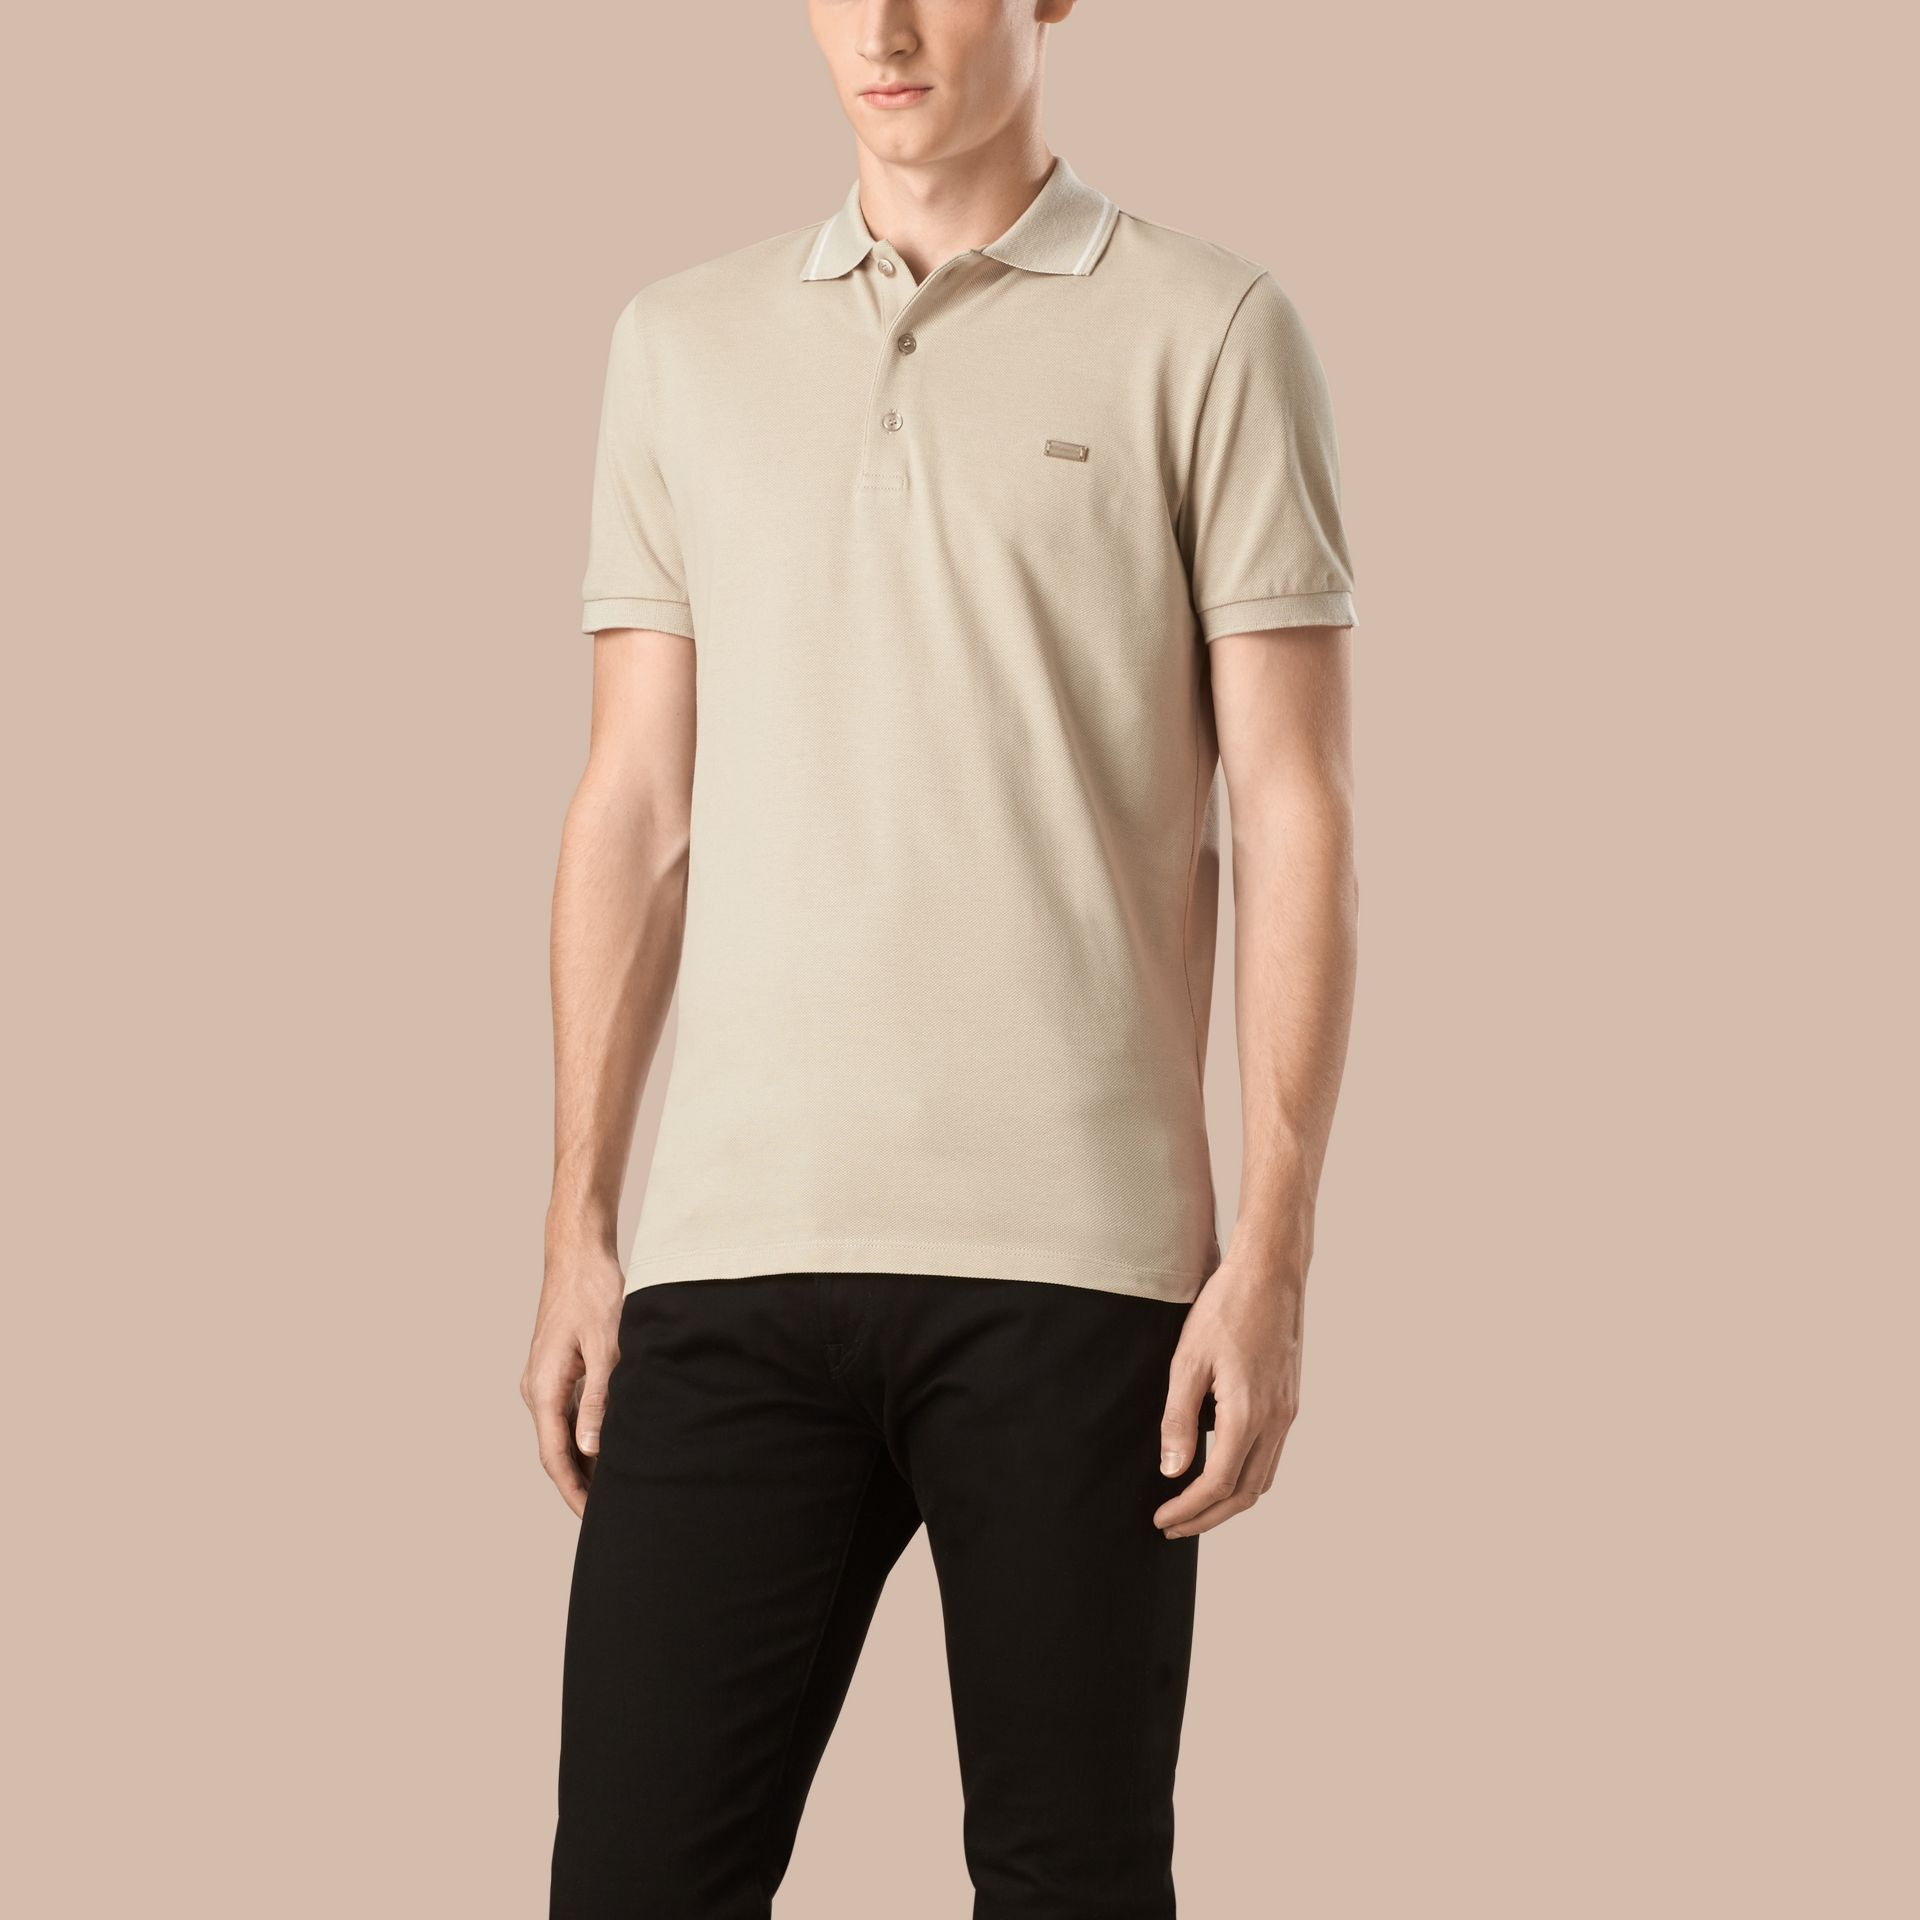 Stone/white Contrast Trim Cotton Piqué Polo Shirt Stone/white - gallery image 1